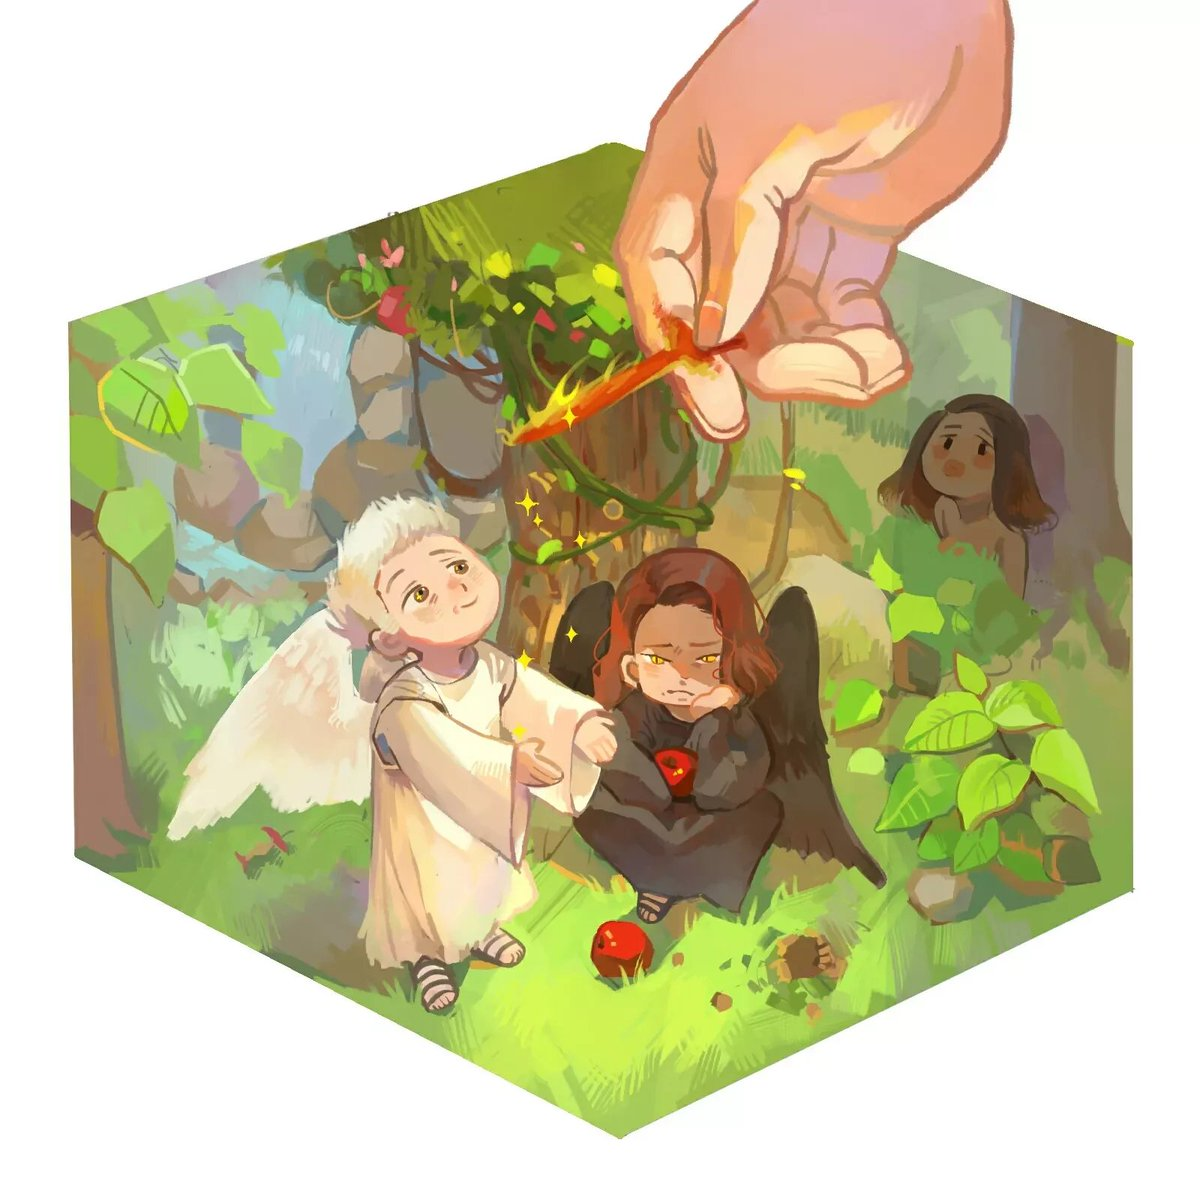 #GoodOmens  Garden of Eden/ the ineffable arrangement <br>http://pic.twitter.com/ONWaC6TAID